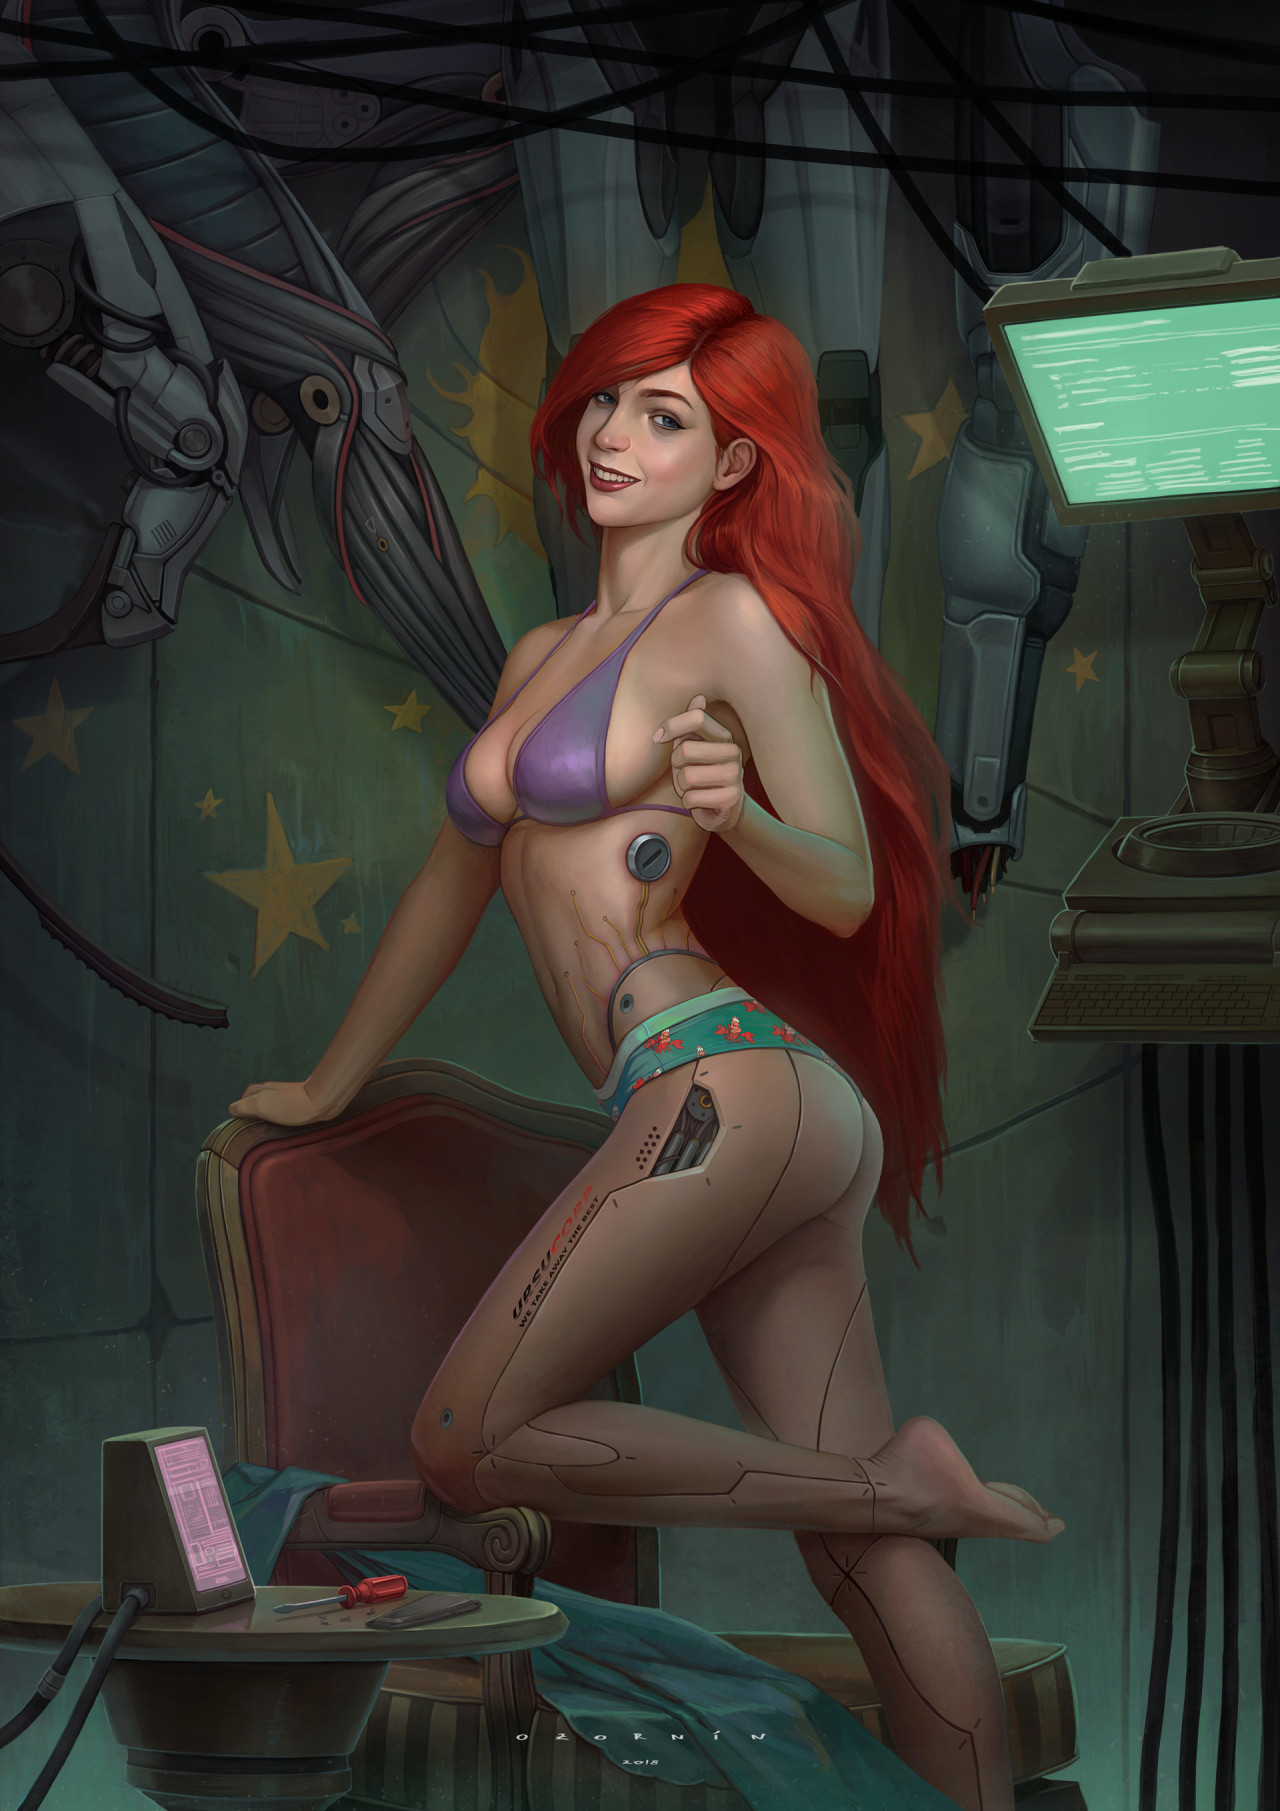 Ilya Ozornin #Ilya Ozornin#ozornin#Ariel#Cyber#Mermaid#Cyberpunk#Dystopia#new legs#Cyborg#redhead#Index#Fave#Batch 192#Absolute Favourite#Outstanding#cherry red